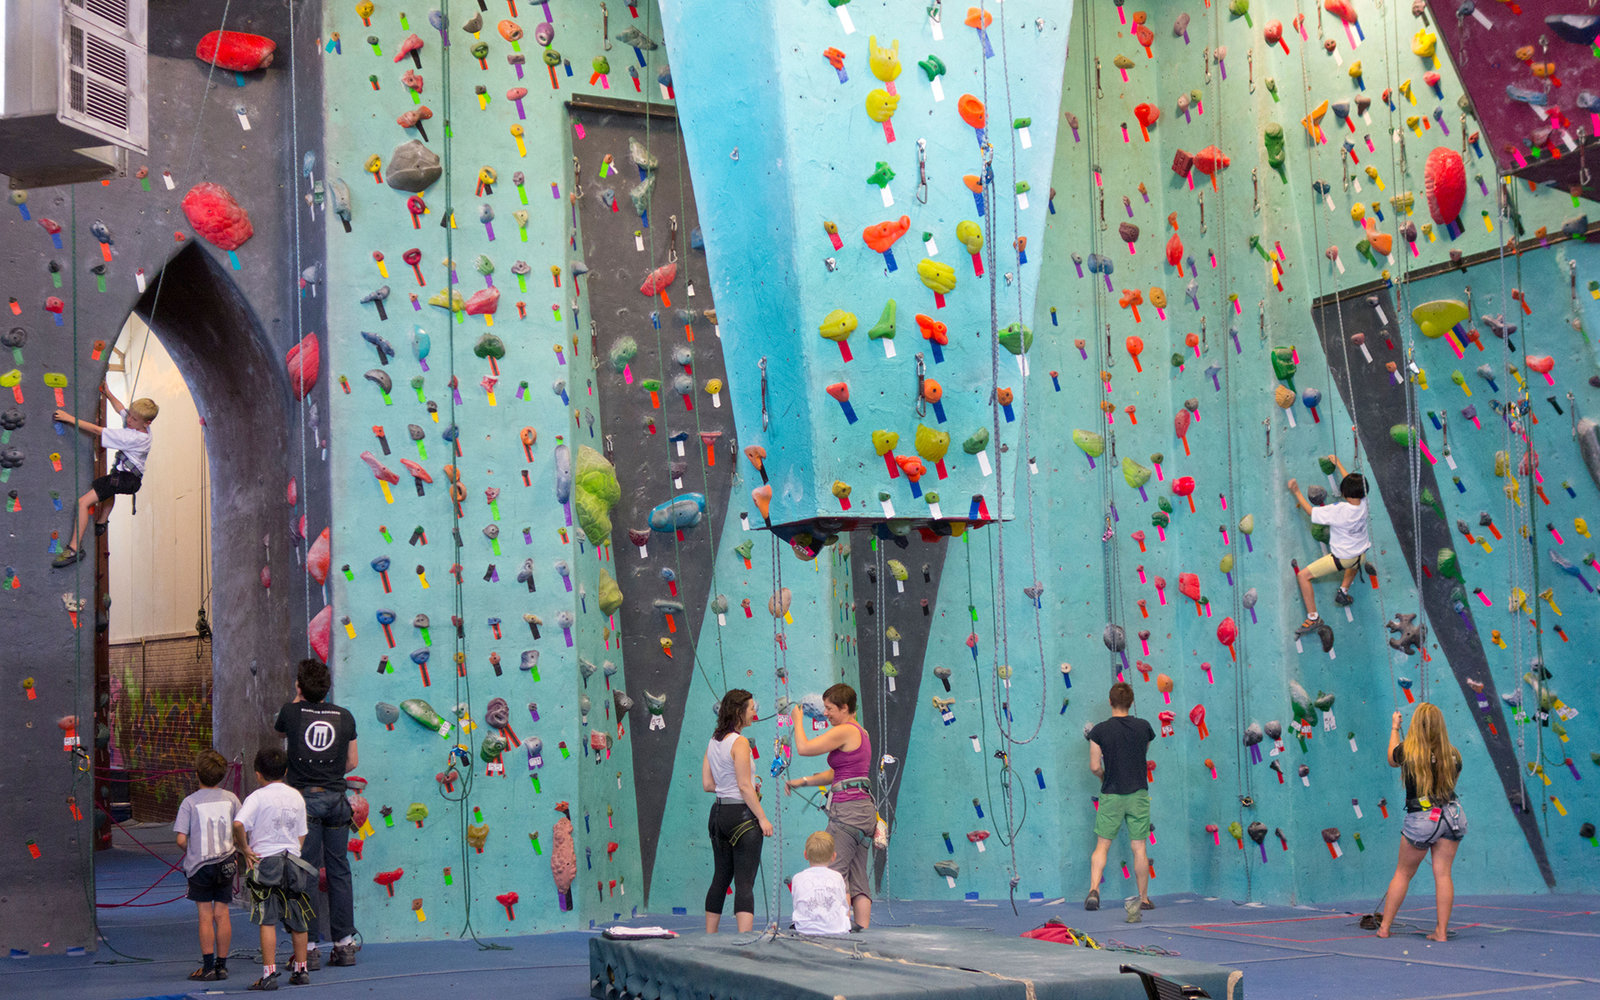 DDEDNK rock climbing at Brooklyn Boulders in NYC